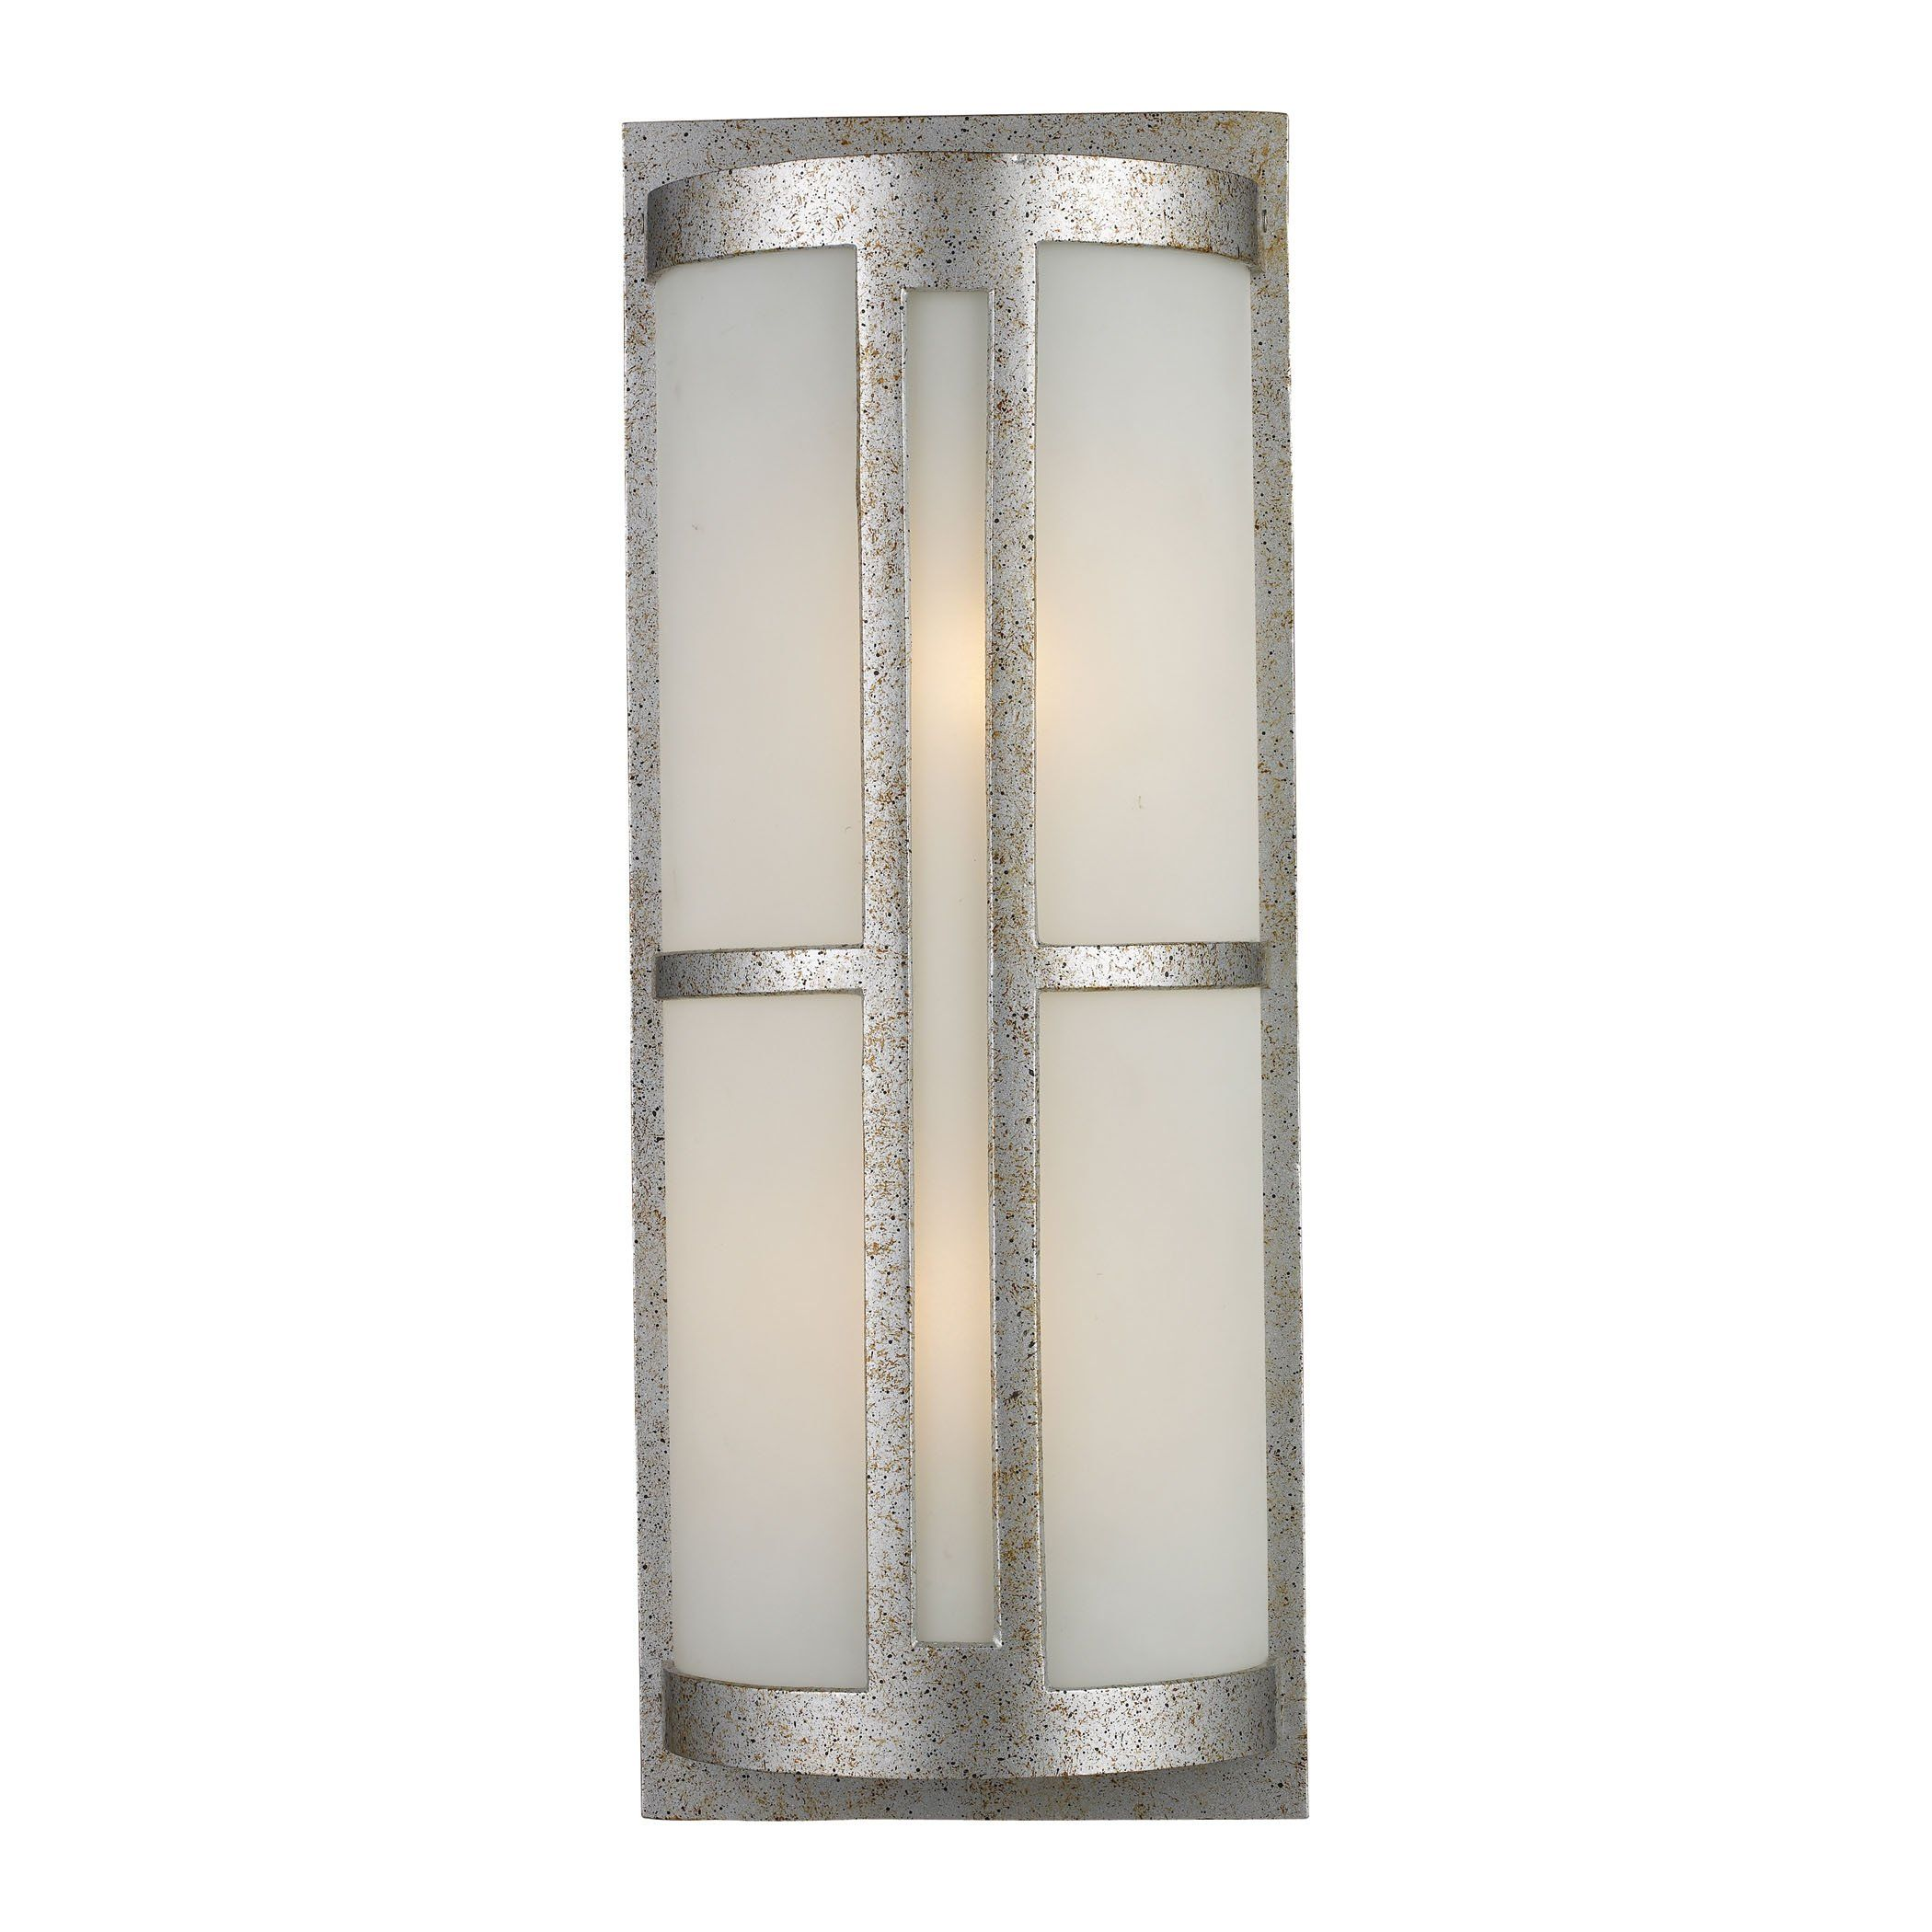 Trevot light outdoor wall sconce in sunset silver and frosted